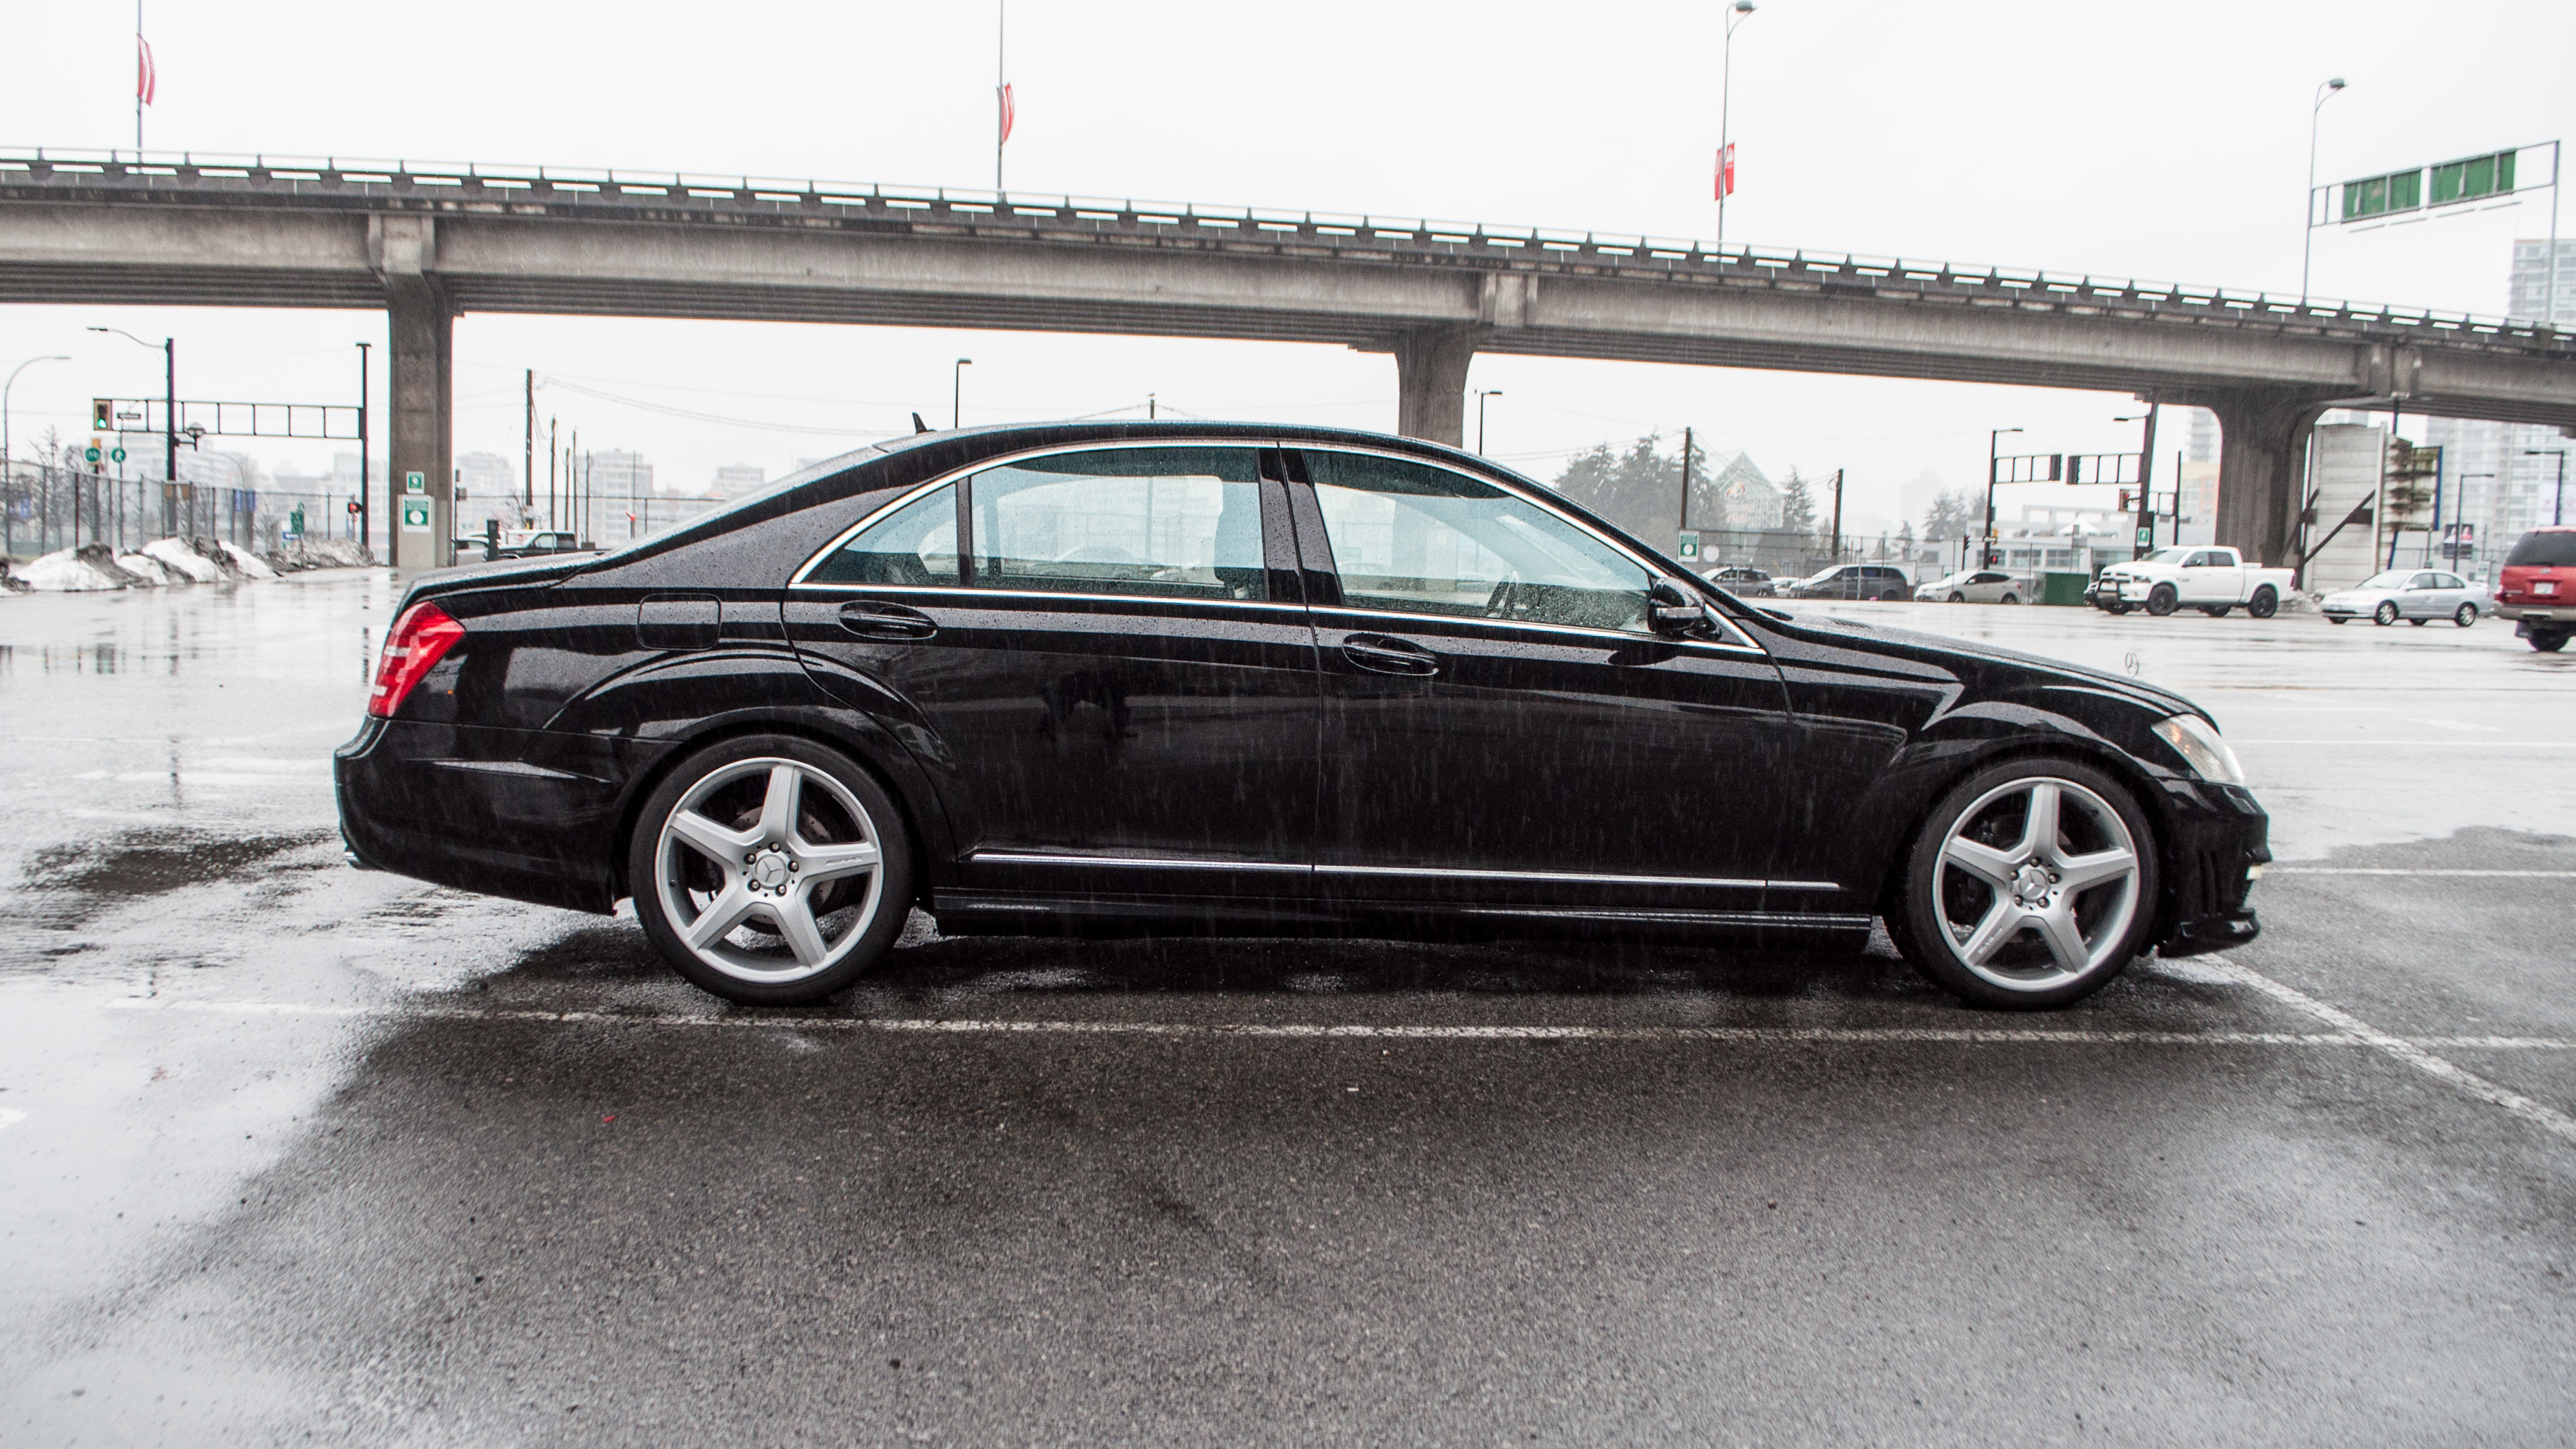 2007 mercedes benz s550 amg package autoform for 2007 s550 mercedes benz